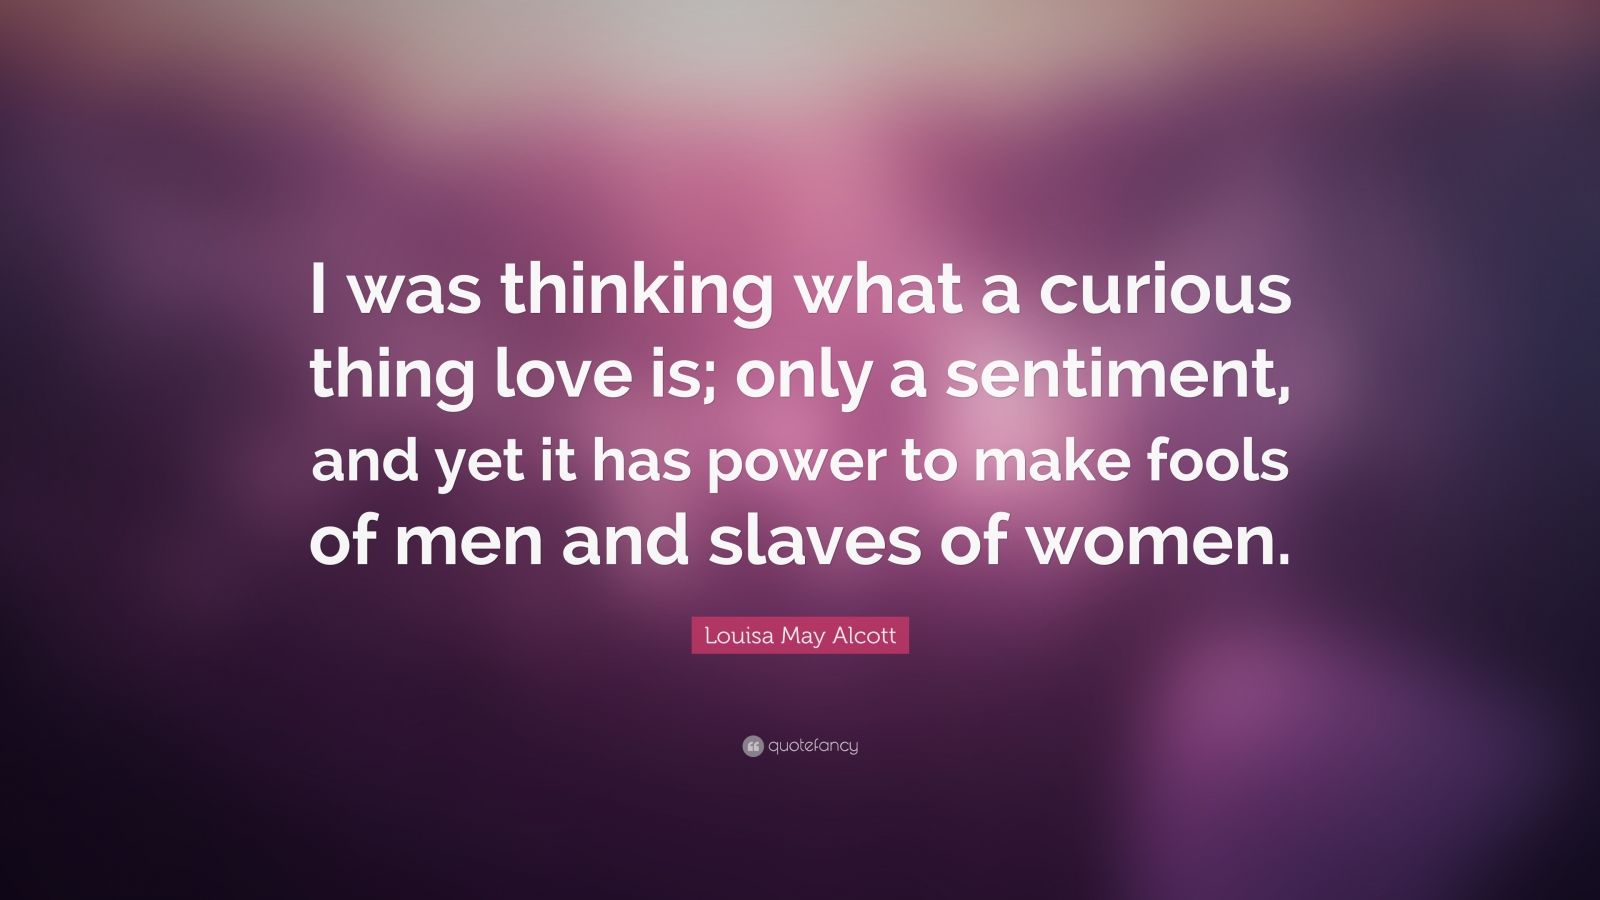 """Louisa May Alcott Quote: """"I was thinking what a curious thing love is; only a sentiment, and yet it has power to make fools of men and slaves of women."""""""